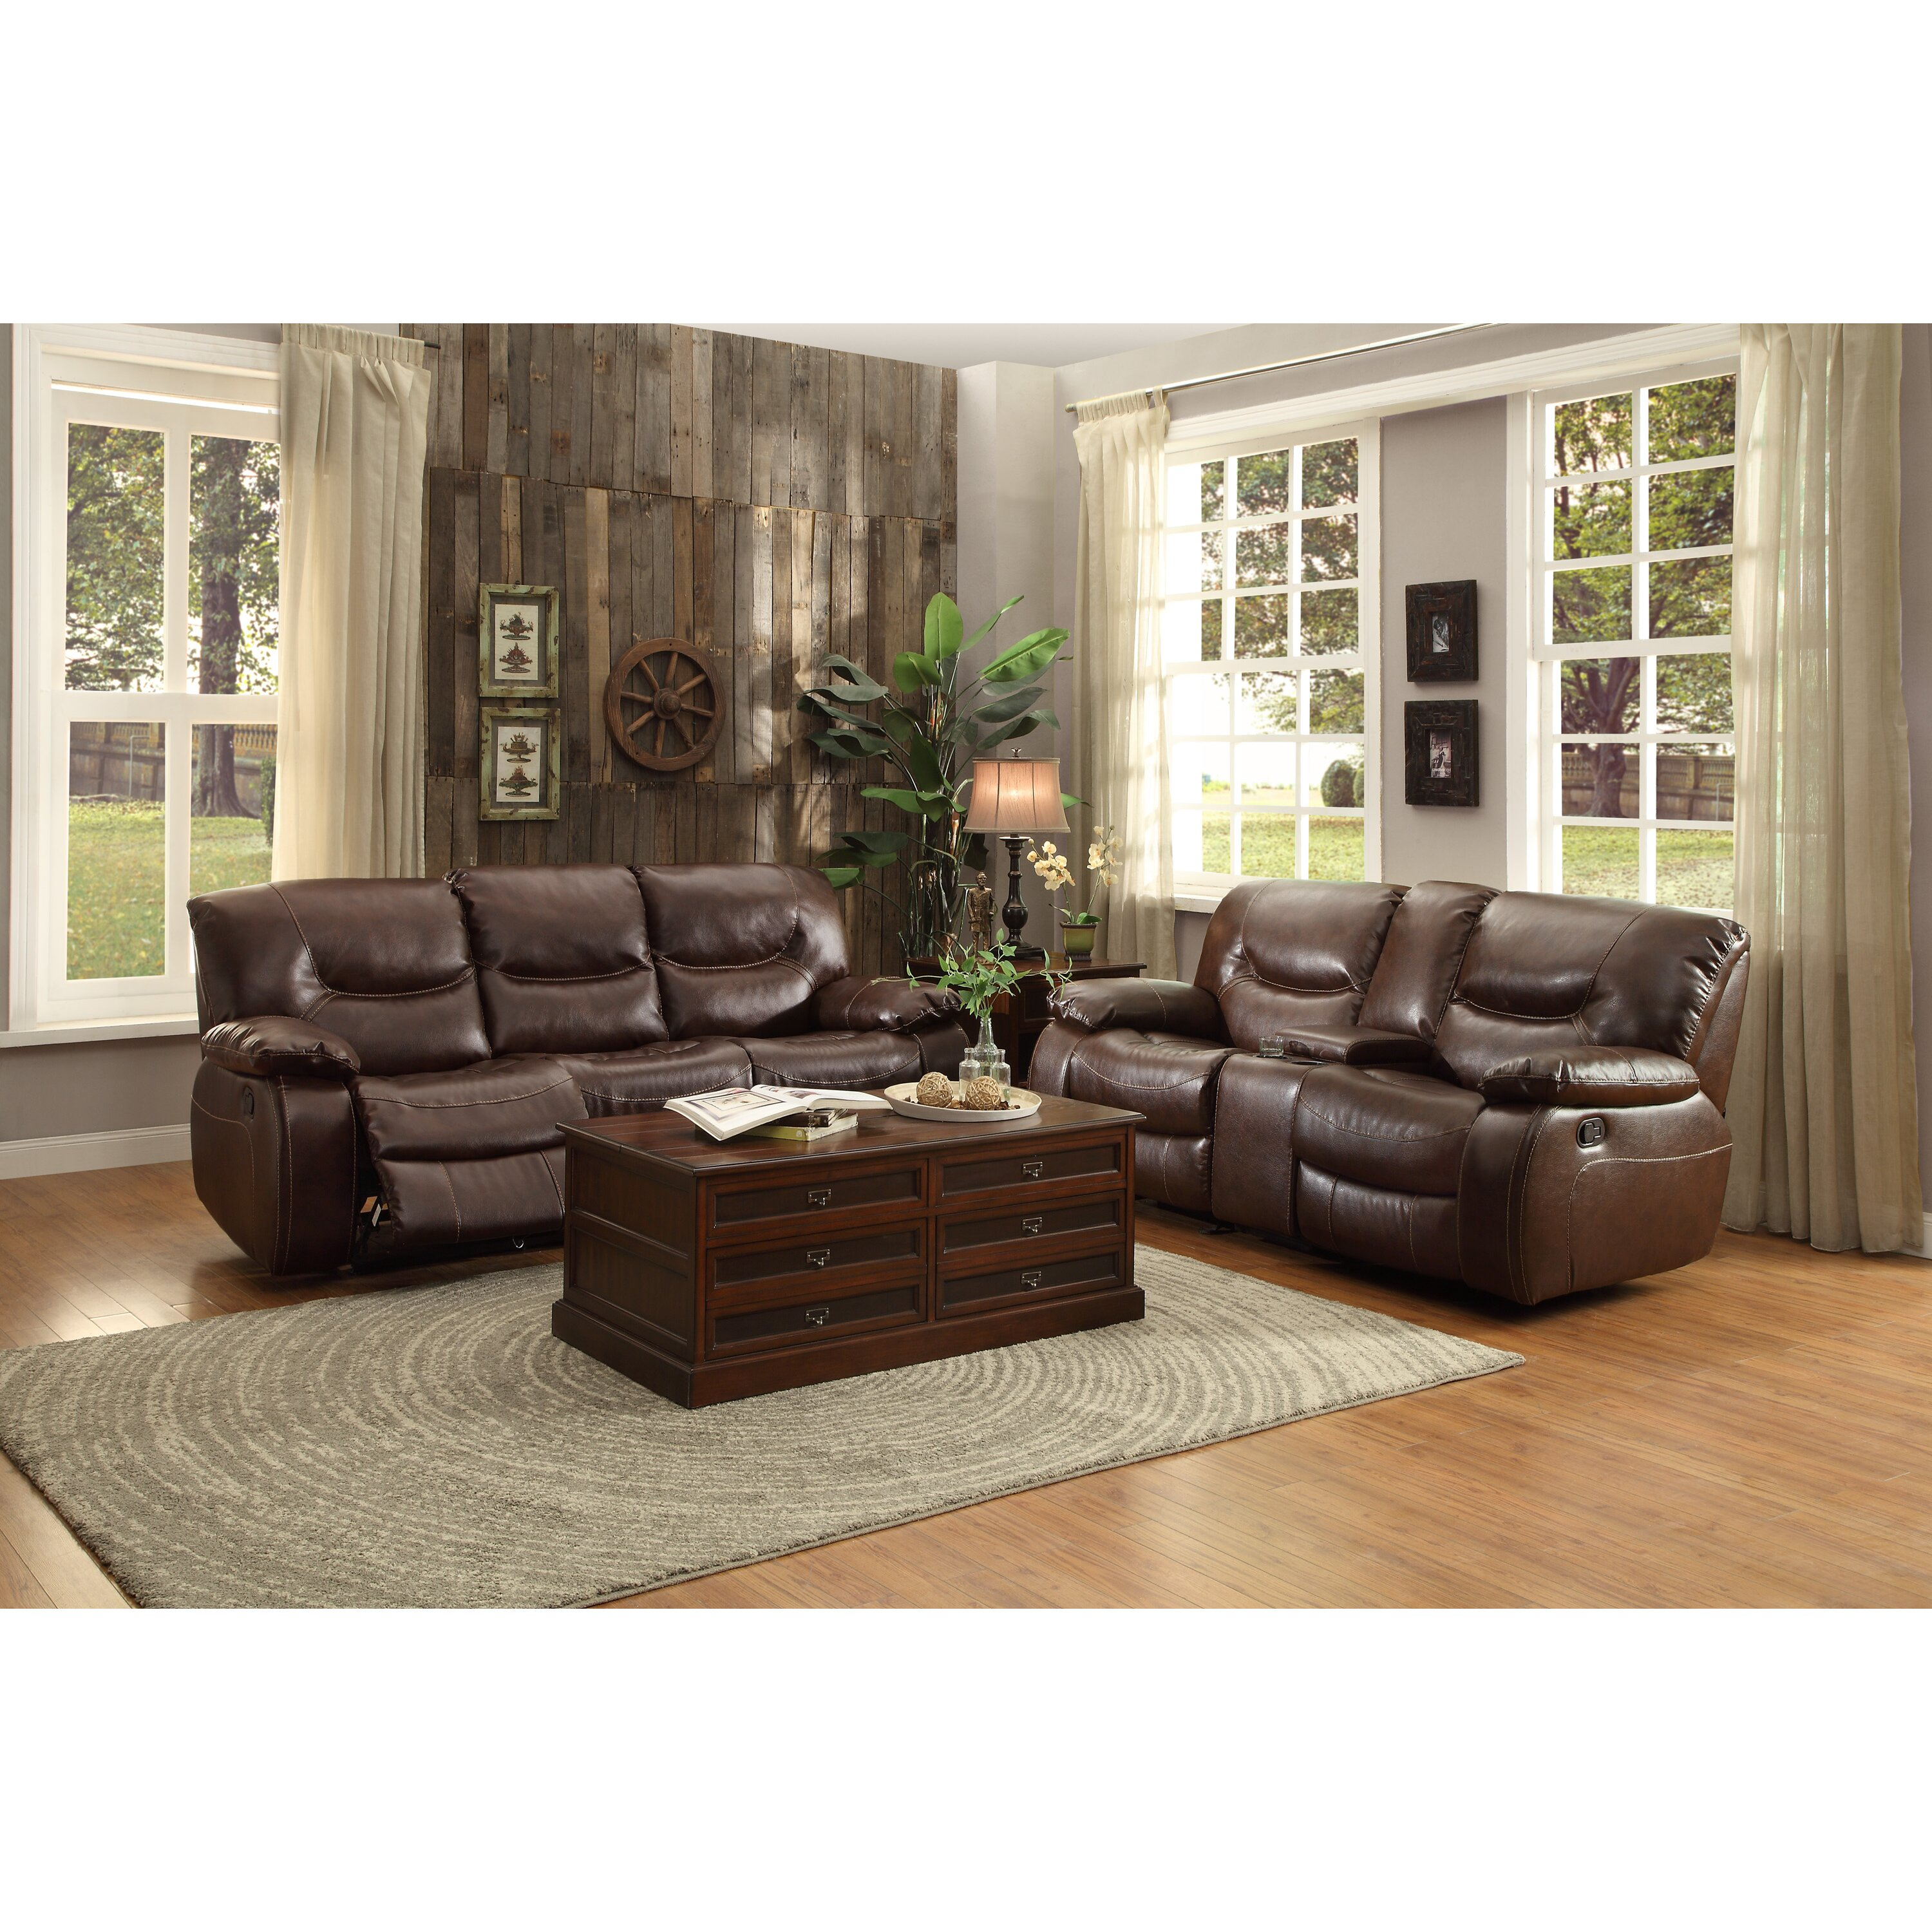 Woodhaven Living Room Furniture Woodhaven Hill Friedrich Coffee Table With Lift Top Reviews